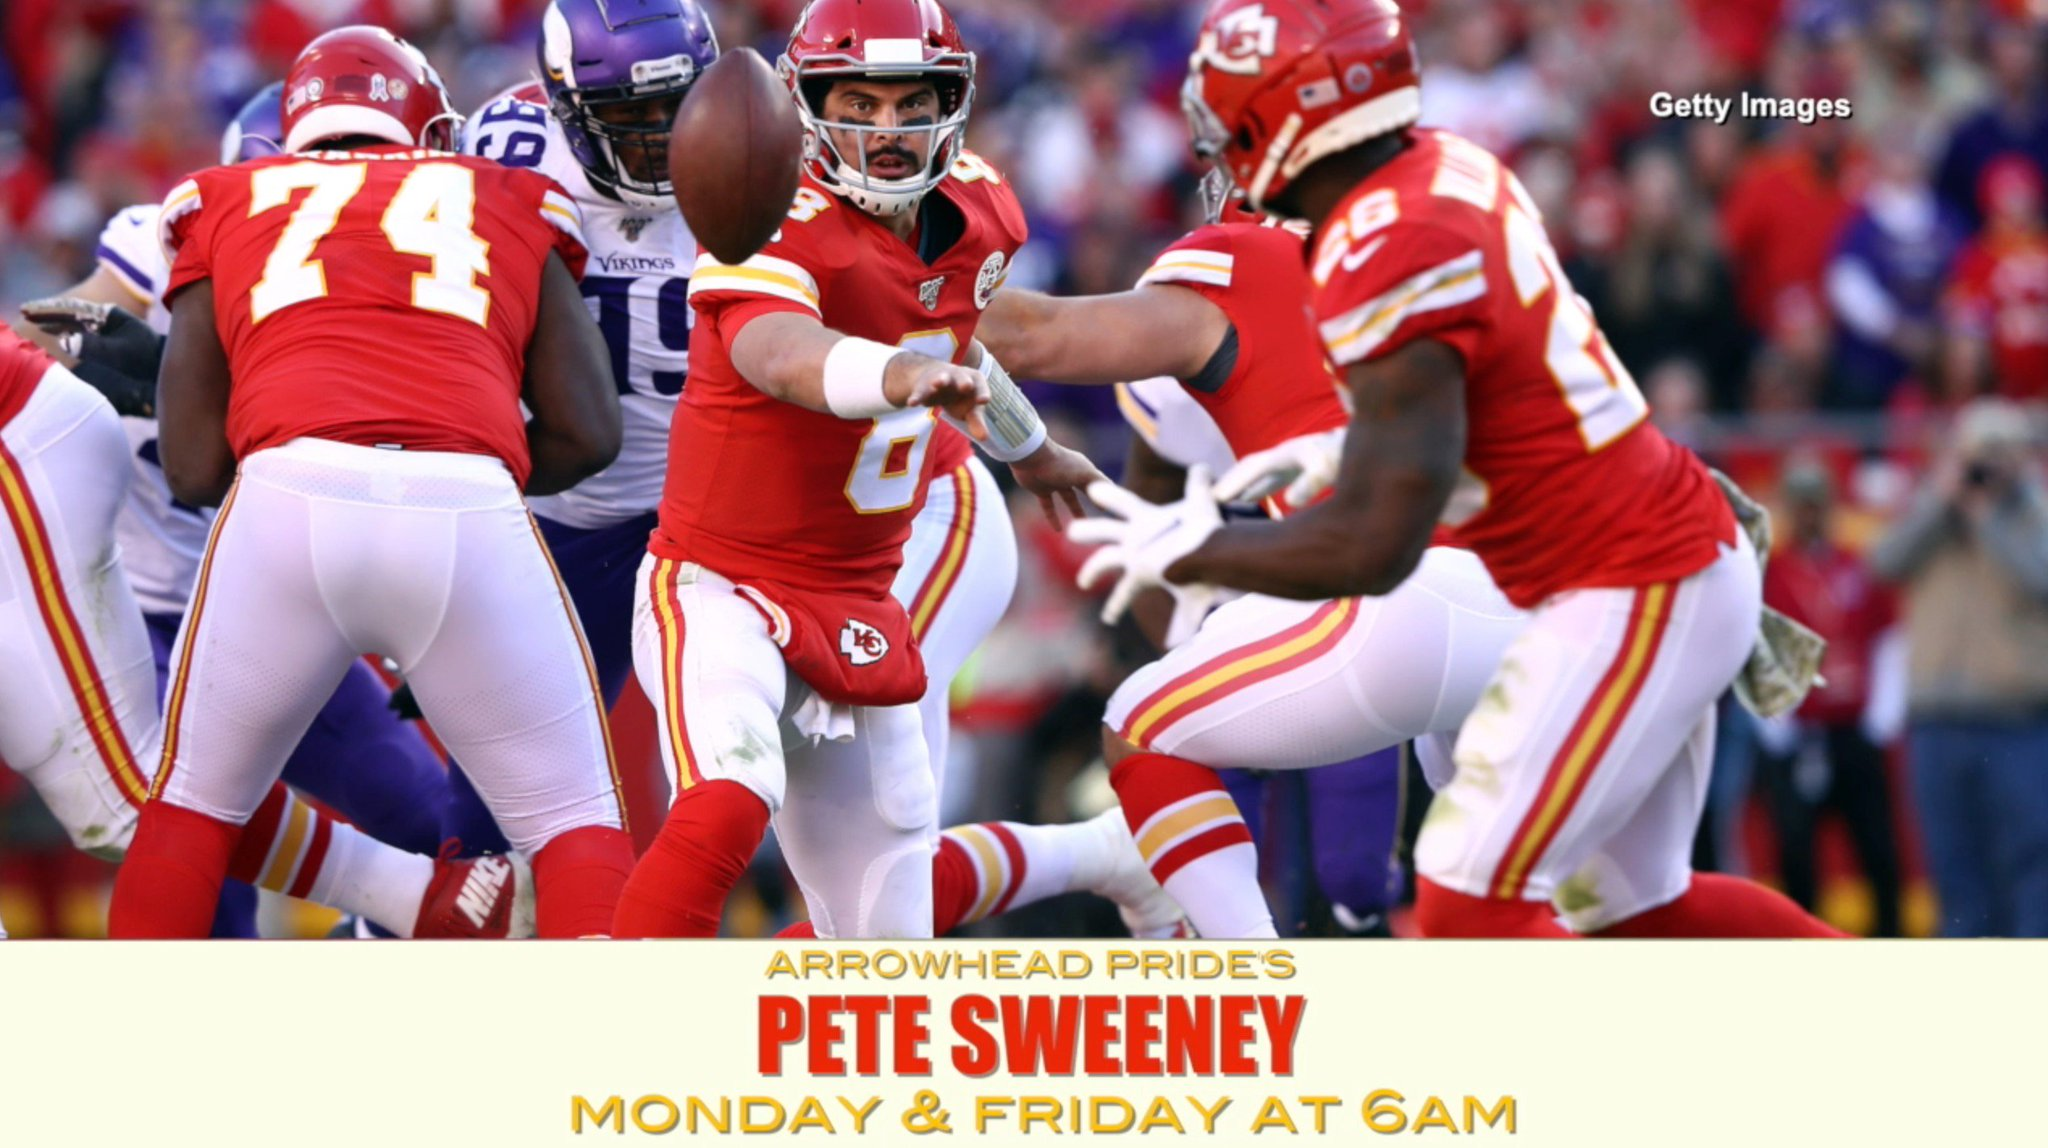 Now that we know who will (likely) play quarterback Sunday, @pgsween from @ArrowheadPride makes his selection for top running back in this week's For Pete's Take! #chiefs #chiefskingdom https://t.co/0ac5cS46vo